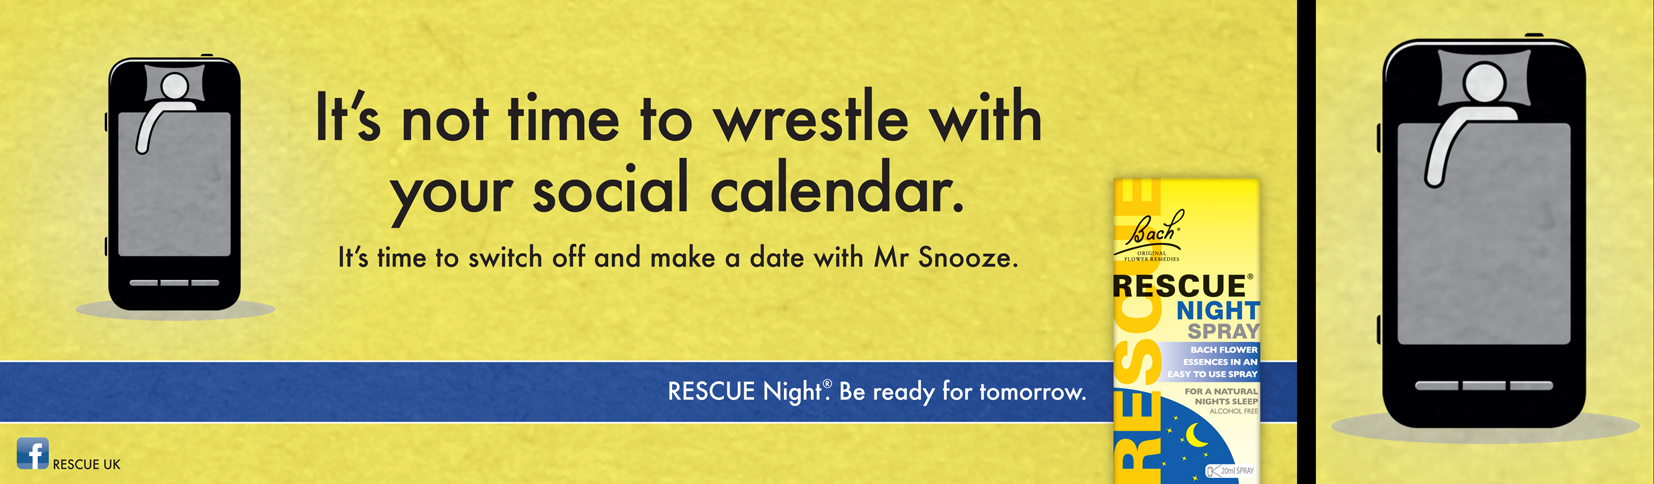 Social Calendar / Rescue Night